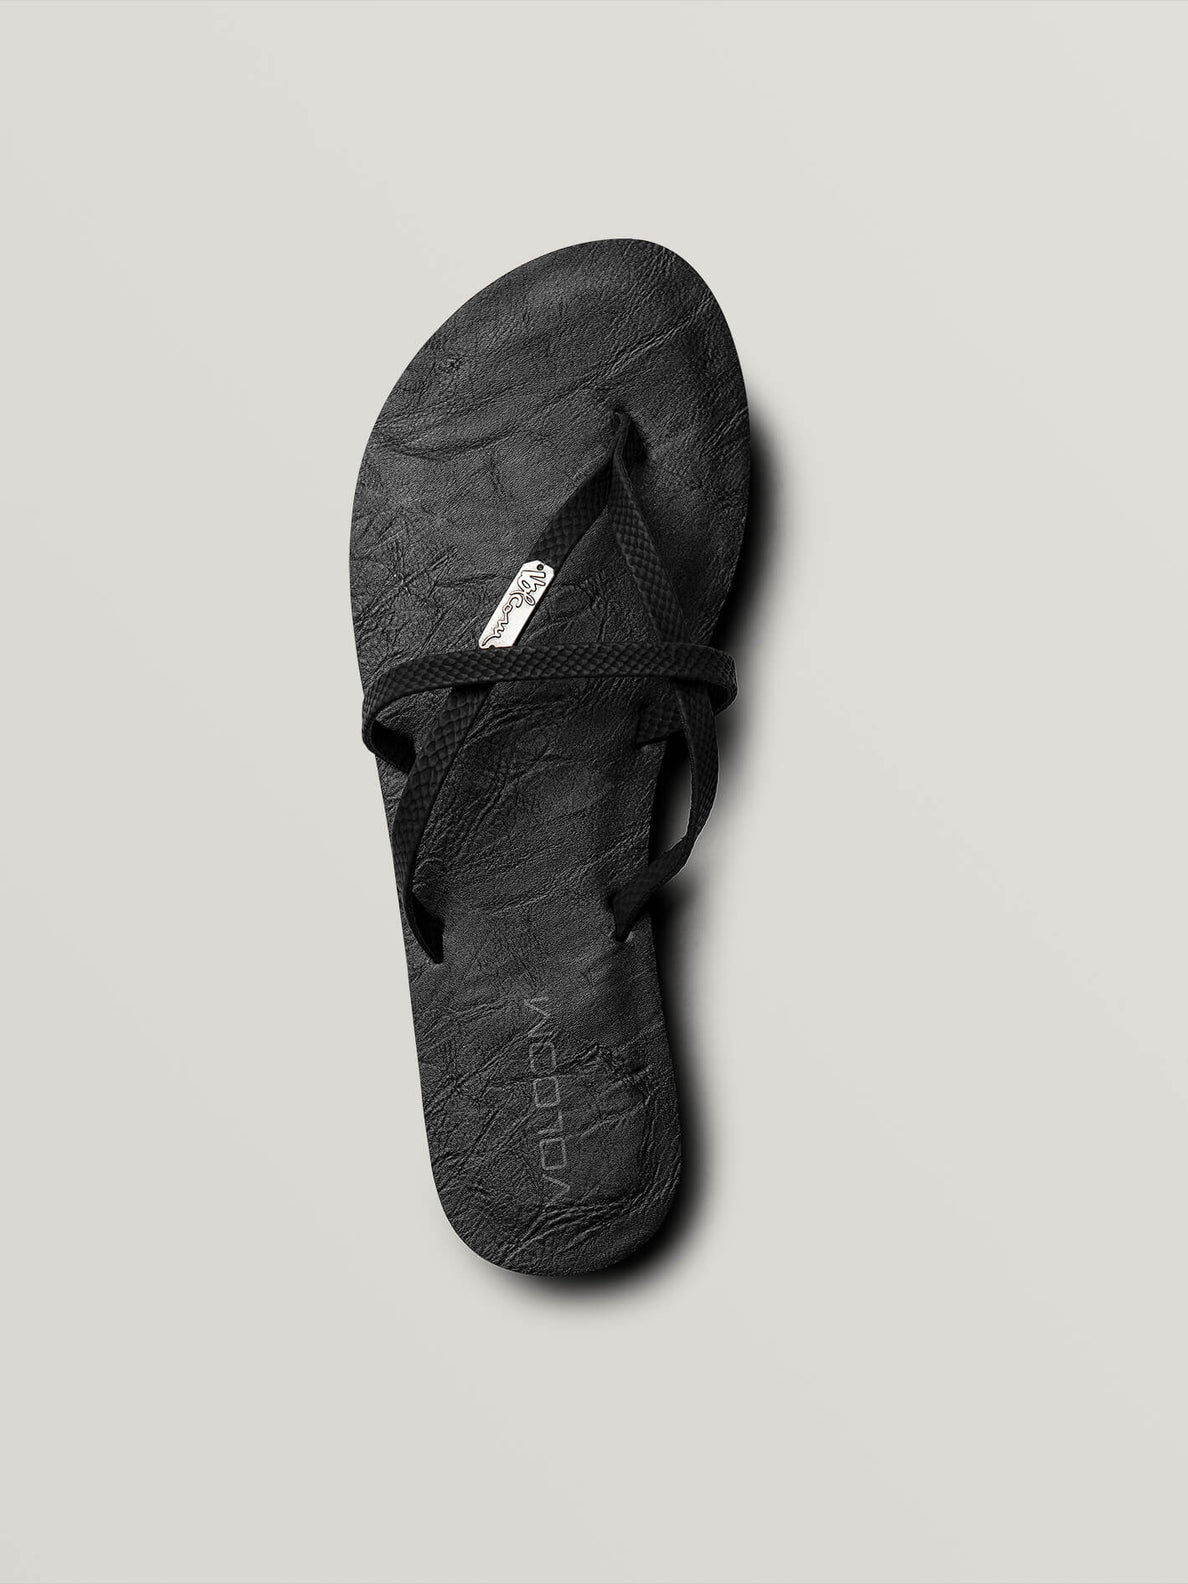 All Night Long Sandals In Sulfur Black, Alternate View